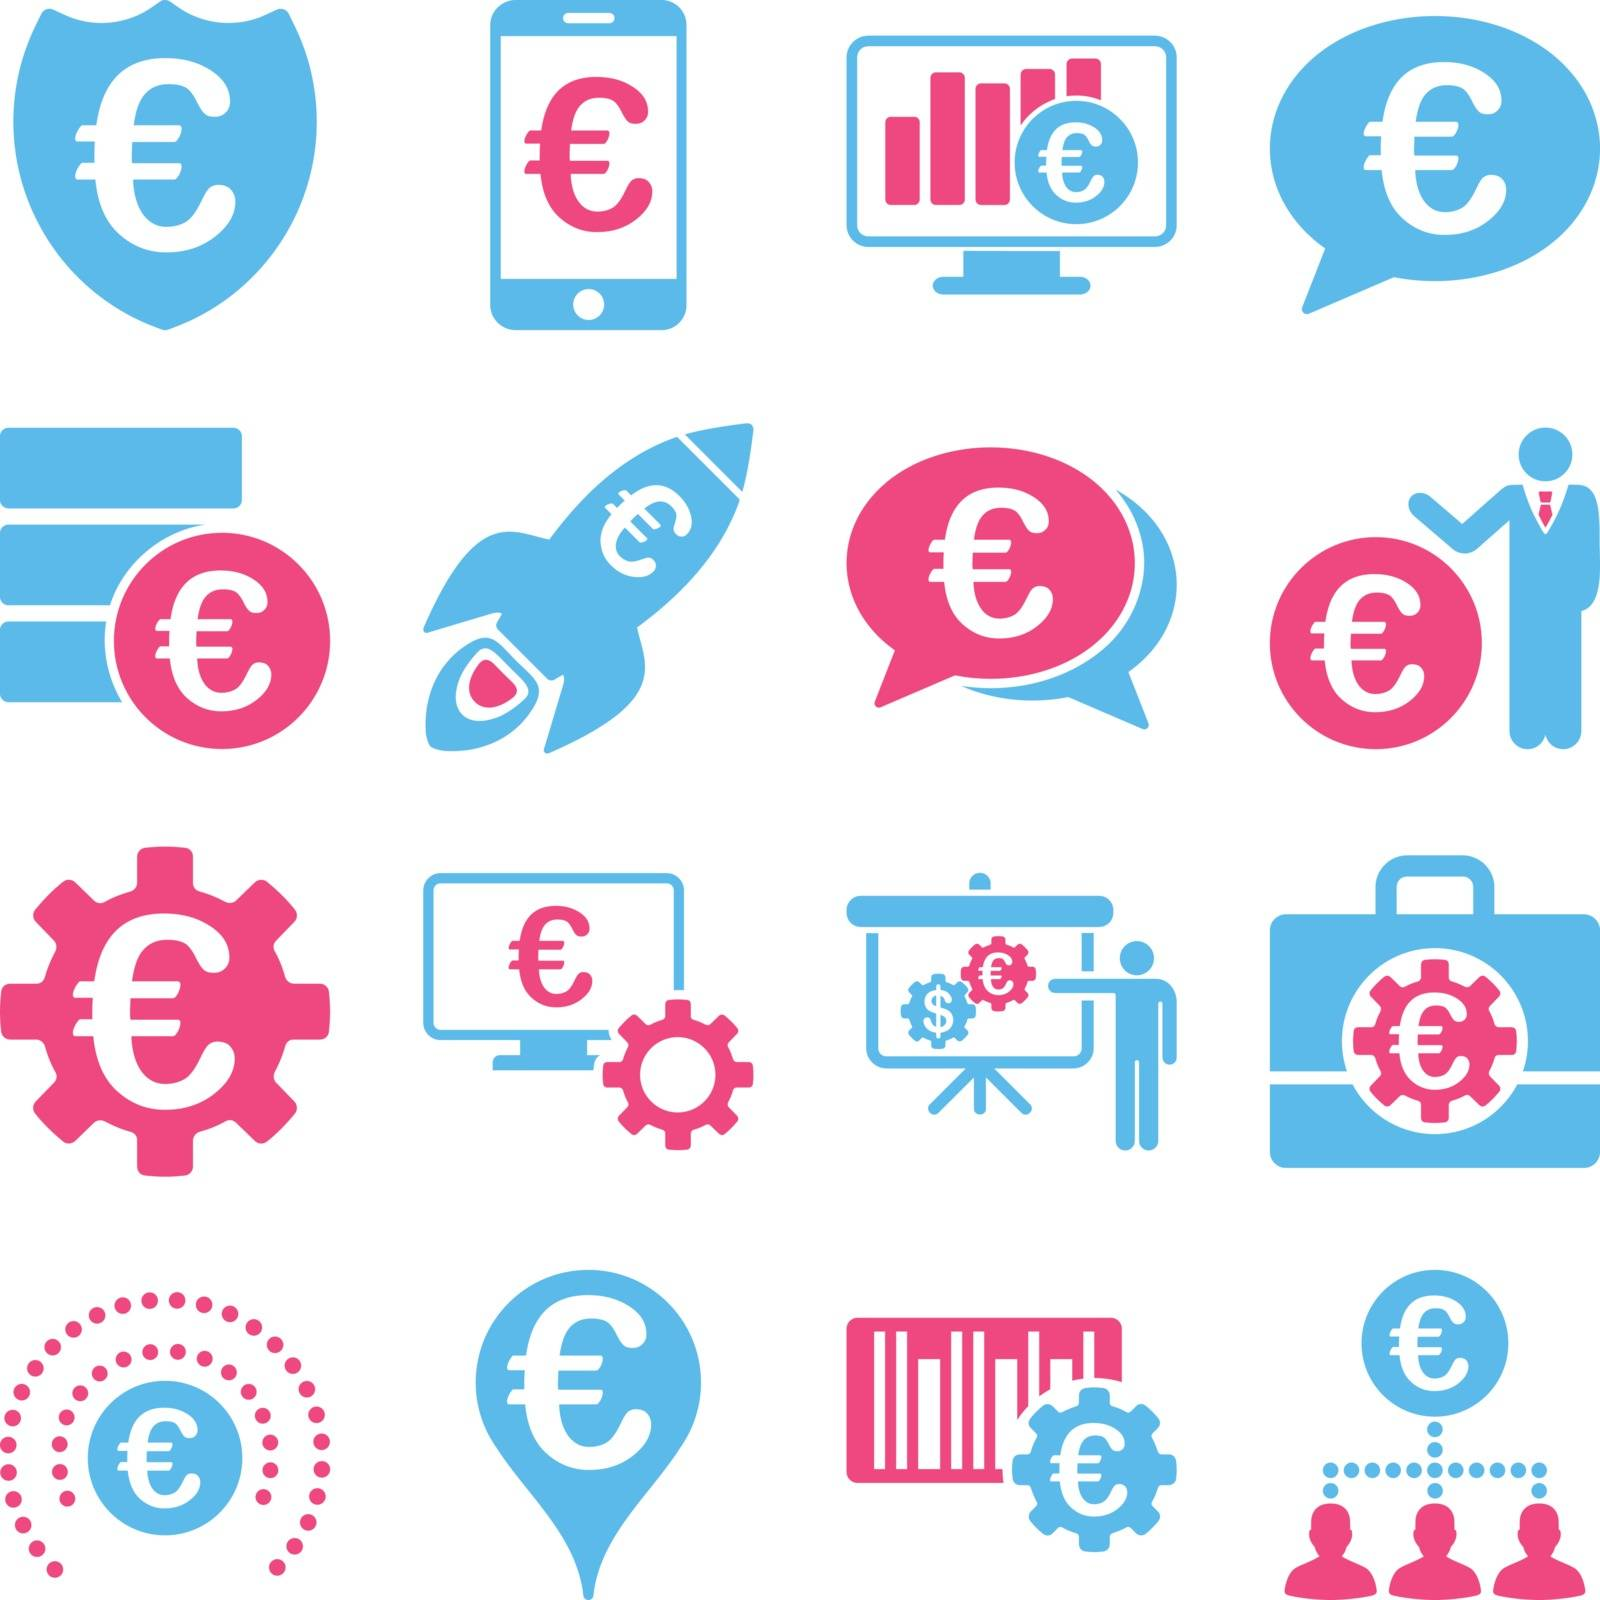 Euro banking business and service tools icons. These flat bicolor icons use pink and blue. Images are isolated on a white background. Angles are rounded.